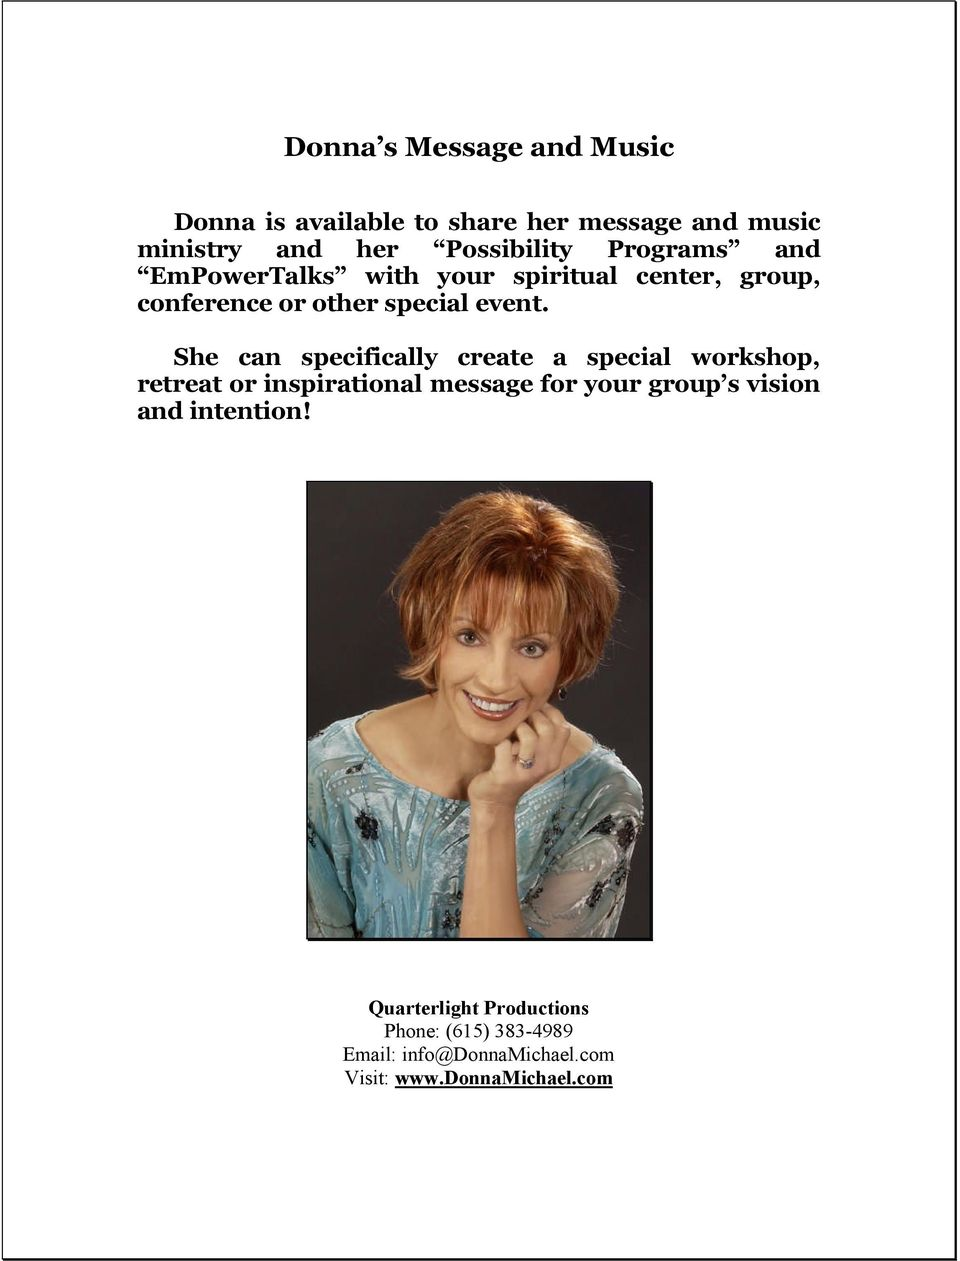 She can specifically create a special workshop, retreat or inspirational message for your group s vision